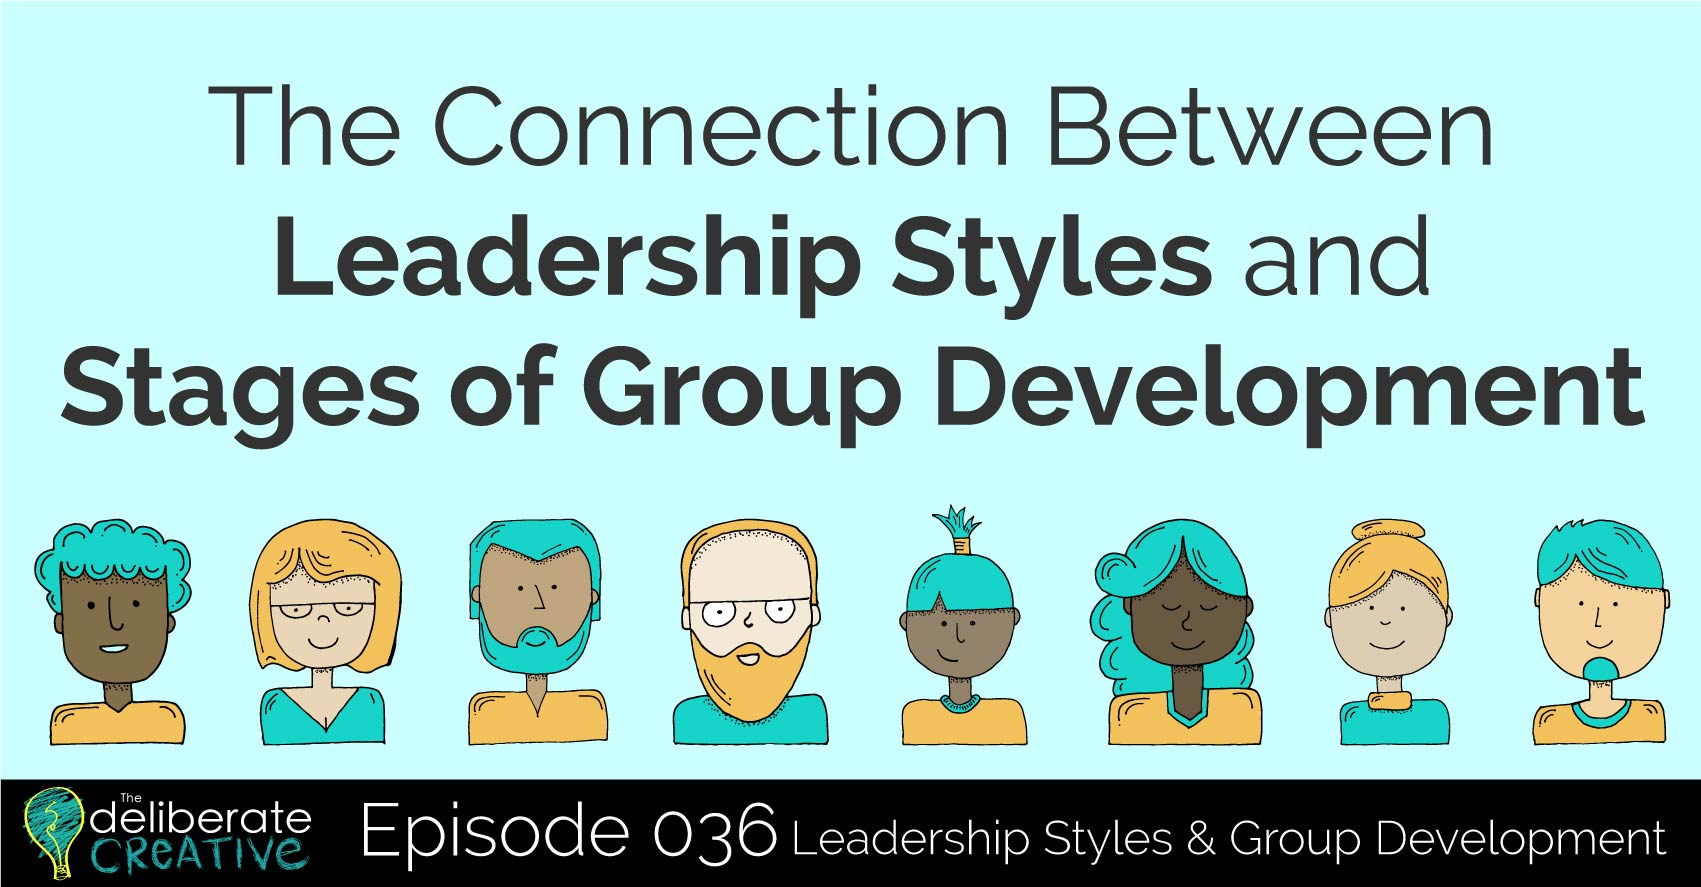 The Deliberate Creative Podcast Episode 36: The Connection Between Leadership Styles and Stages of Group Development